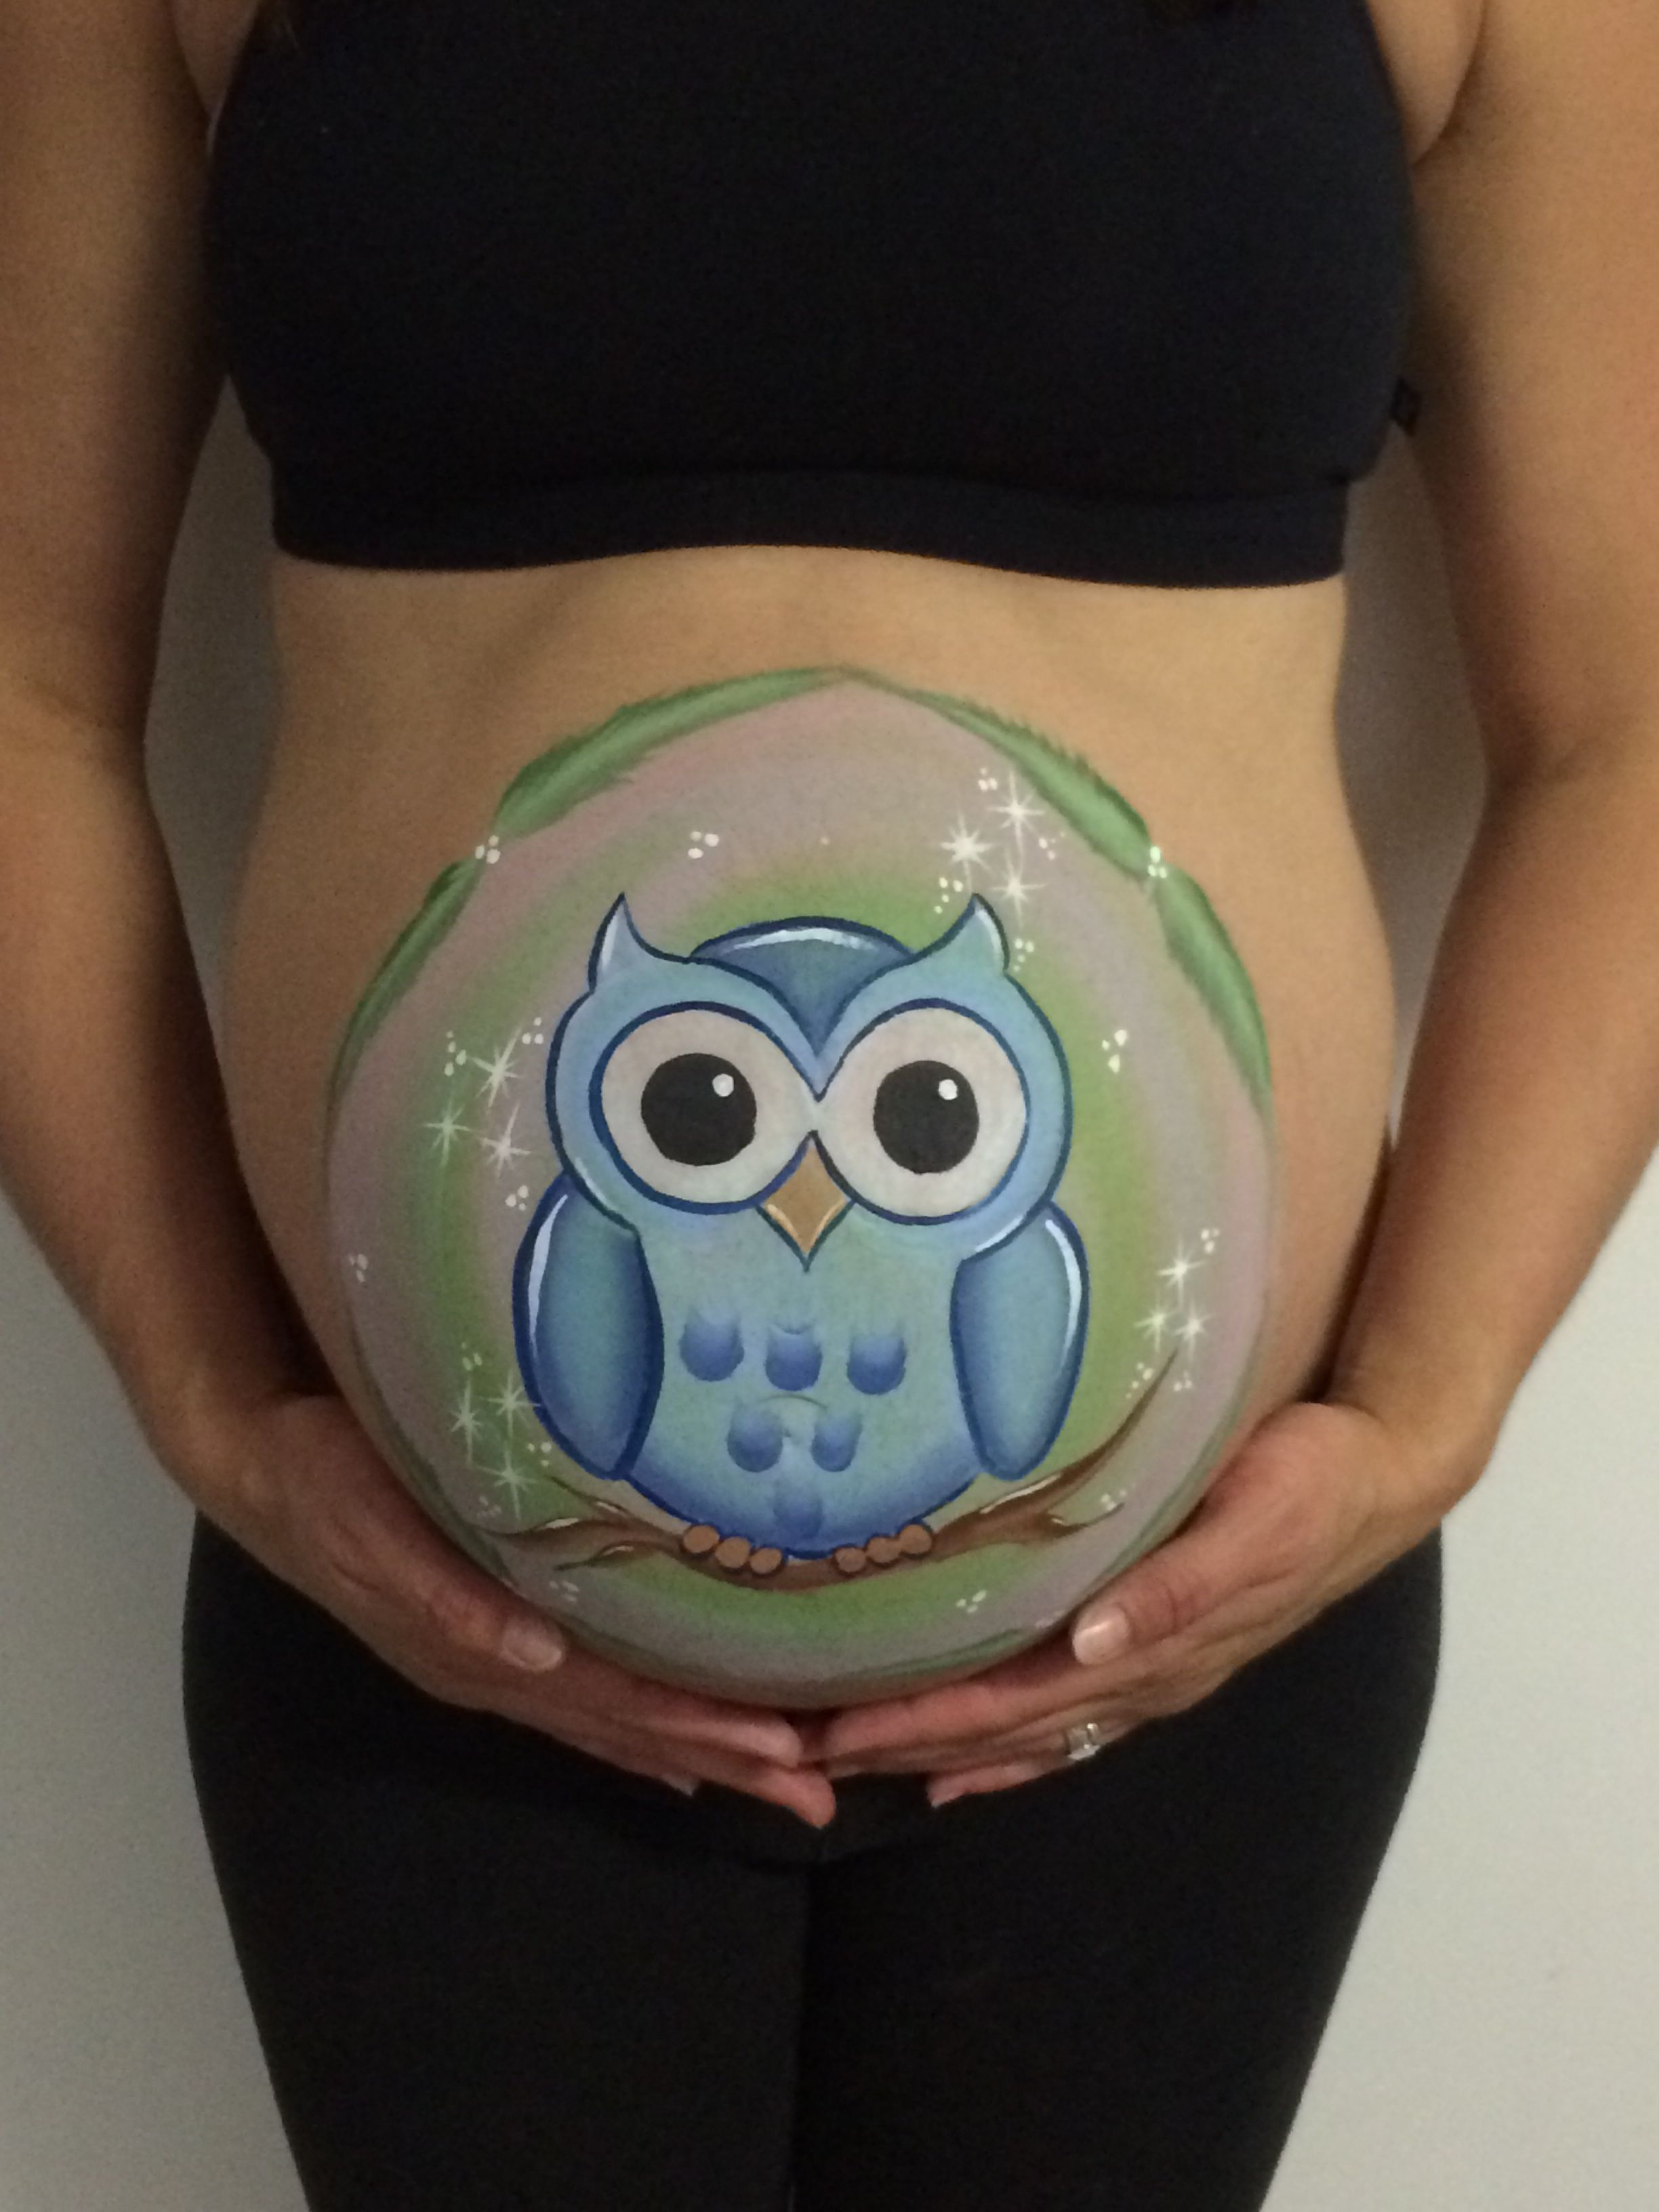 Baby belly painting ... 37 weeks and 4 days, waters broken and during contractions!!! Had to get it done quickly!